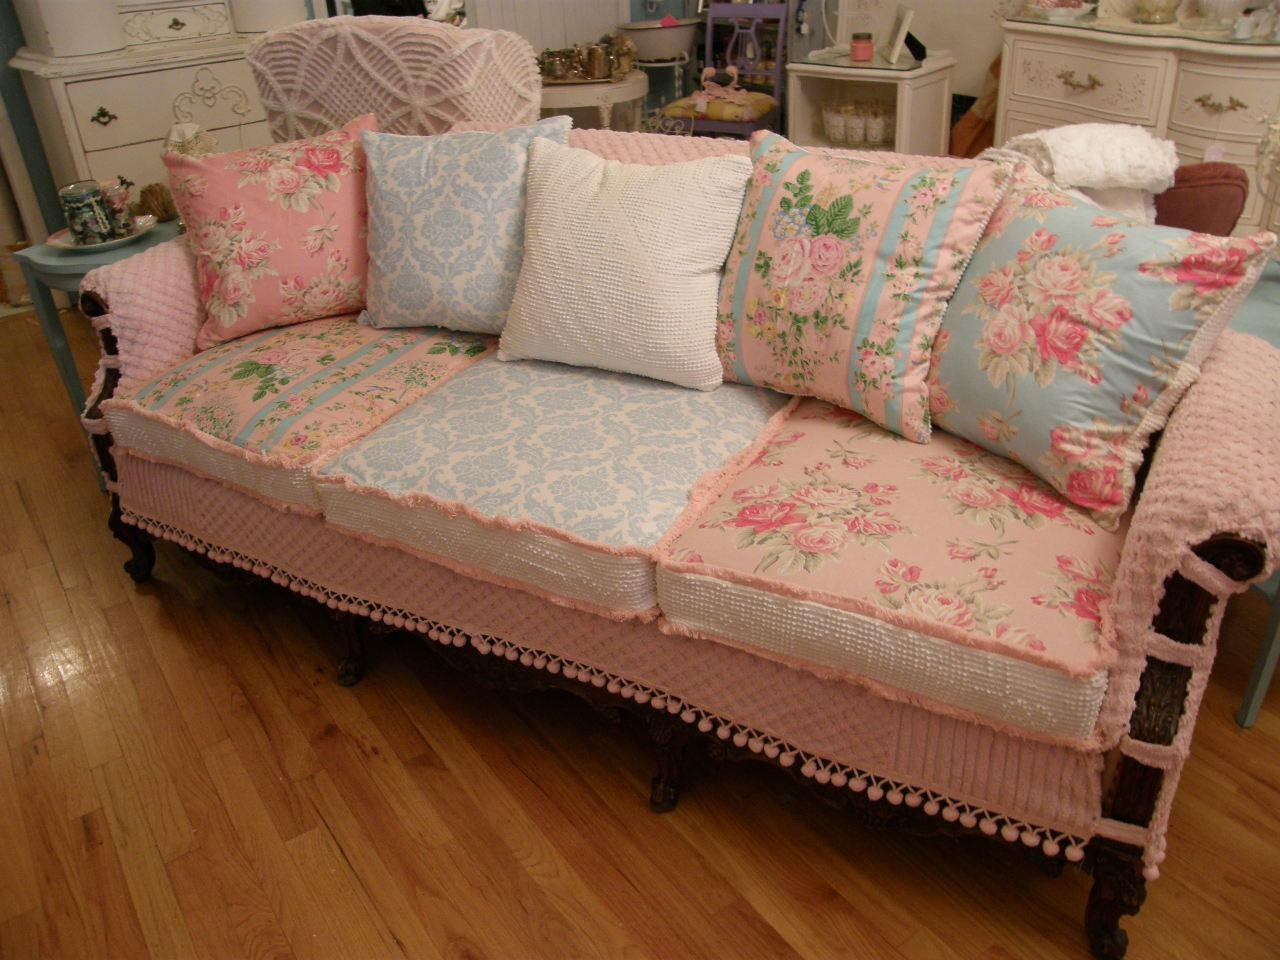 Slip Covers Chair And Quality Interiors | Sofa Slipcover | Chair Regarding Country Cottage Sofas And Chairs (Image 18 of 20)